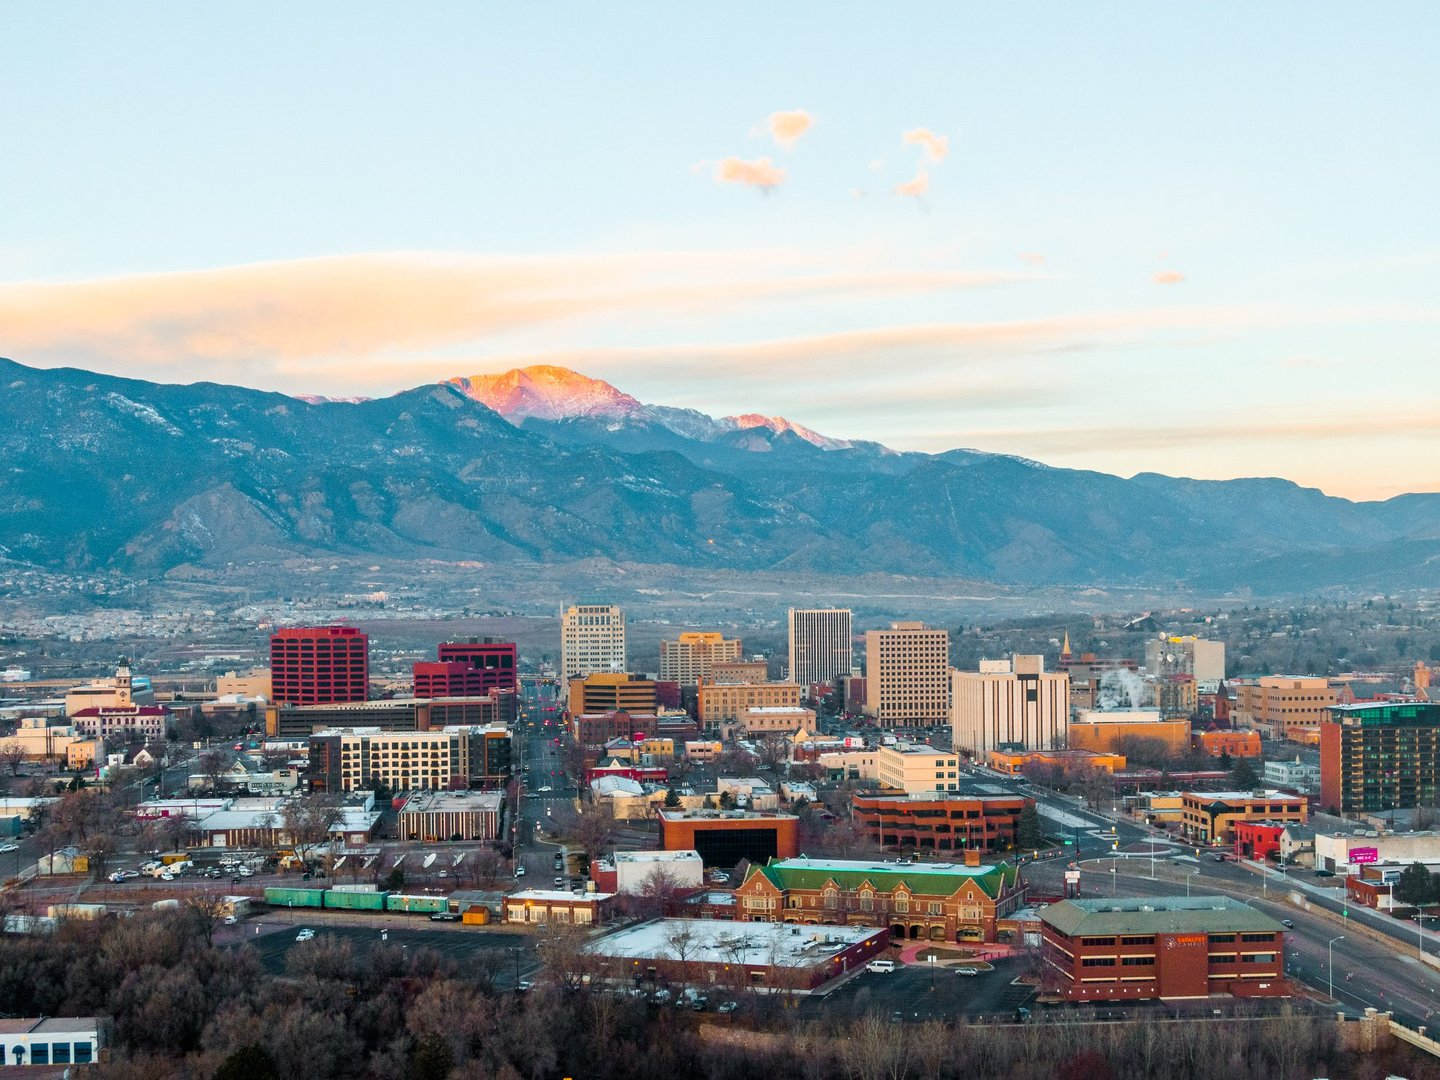 A new ordinance for short-term rentals in Colorado Springs went into effect January 1, 2019. The benefits of the  ordinance include:• There is a lot of short-term rental revenue that has not been captured because many property owners have not been collecting sales tax and LART. We want to be fair across the board for both established hotels and properties and residential properties. Short-term rentals are a form of business that needs to have guidelines about how they are operated to protect all parties- property owners, renters, and neighbors.• Safety for both renters and property owners. The ordinance ensures rental properties meet zoning, insurance, sales tax requirements and provide for a responsible party who can immediately address any issues or concerns.• This ordinance helps to ensure a quality level of service for all short-term rental owners in that if a property owner is continually in violation of the permit it can be suspended or revoked. • This establishes zoning regulations and clear information so that people who choose to rent out a property for short-term rentals understand the regulations and their responsibilities.The new rules apply to all properties (including rooms and guest houses) rented for less than 30 consecutive days. Find out what you need to do before you list your property on sites like Airbnb and VRBO. Visit https://coloradosprings.gov/str